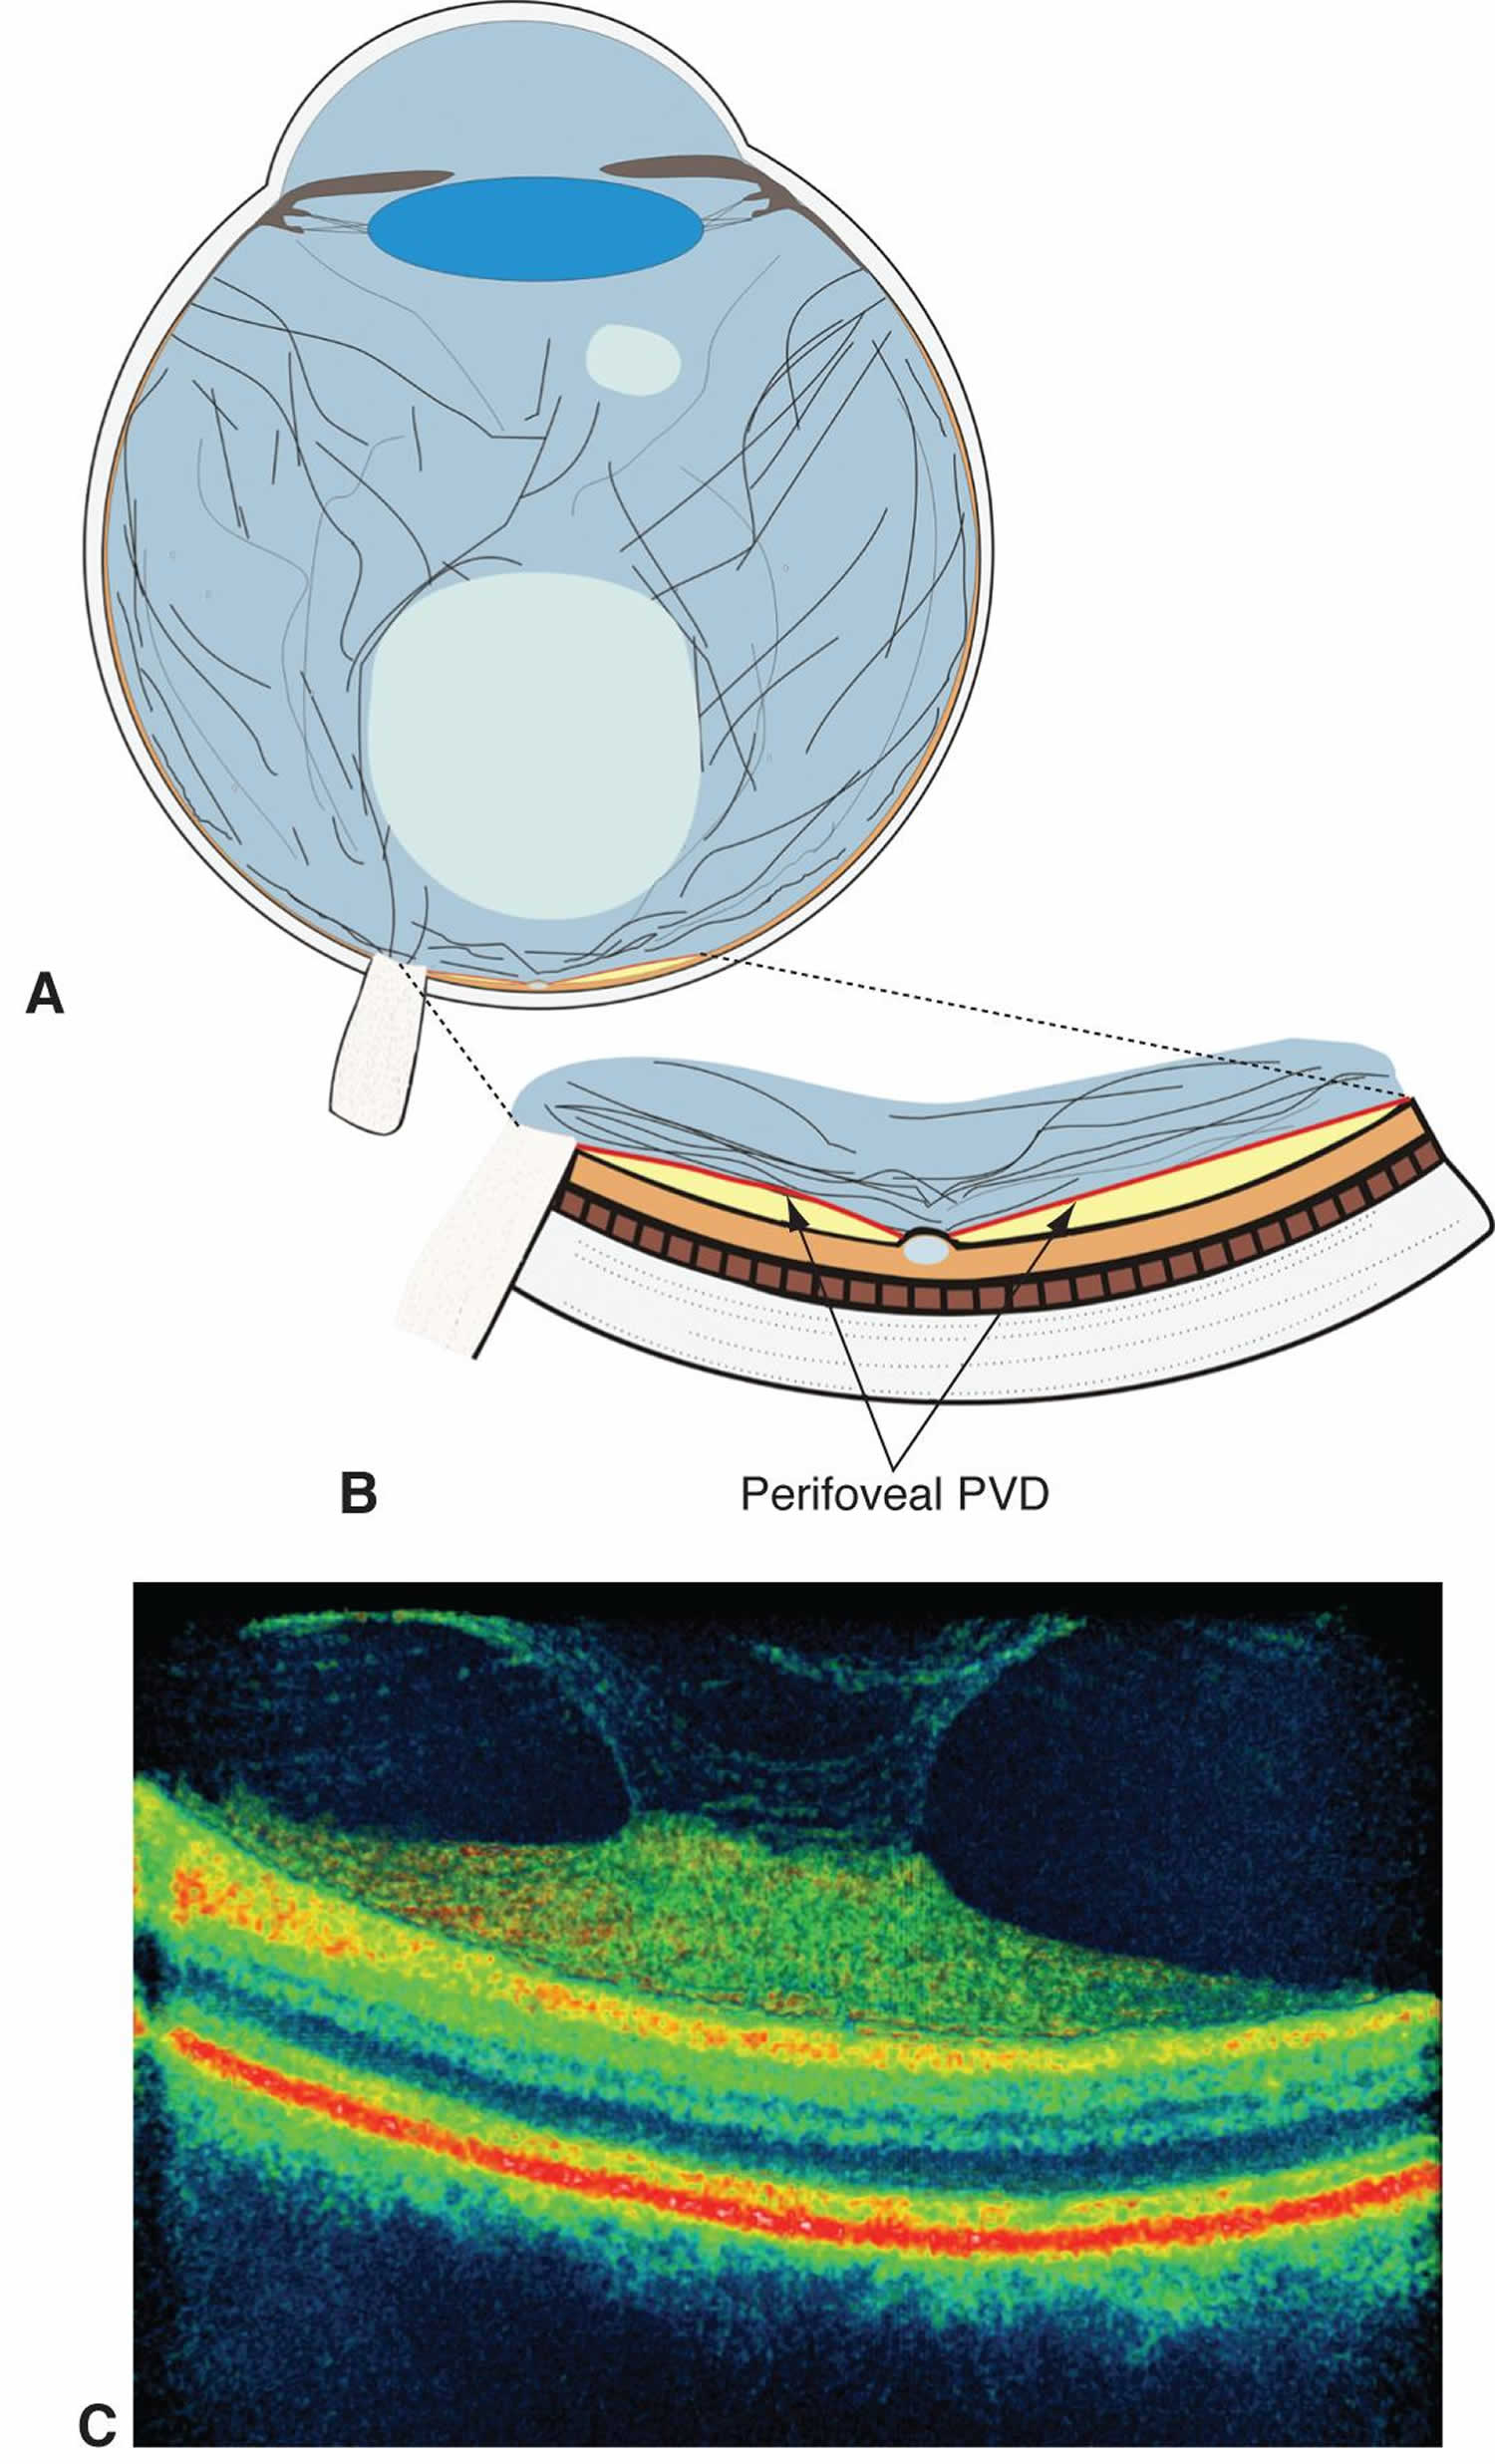 Perifoveal posterior vitreous detachment